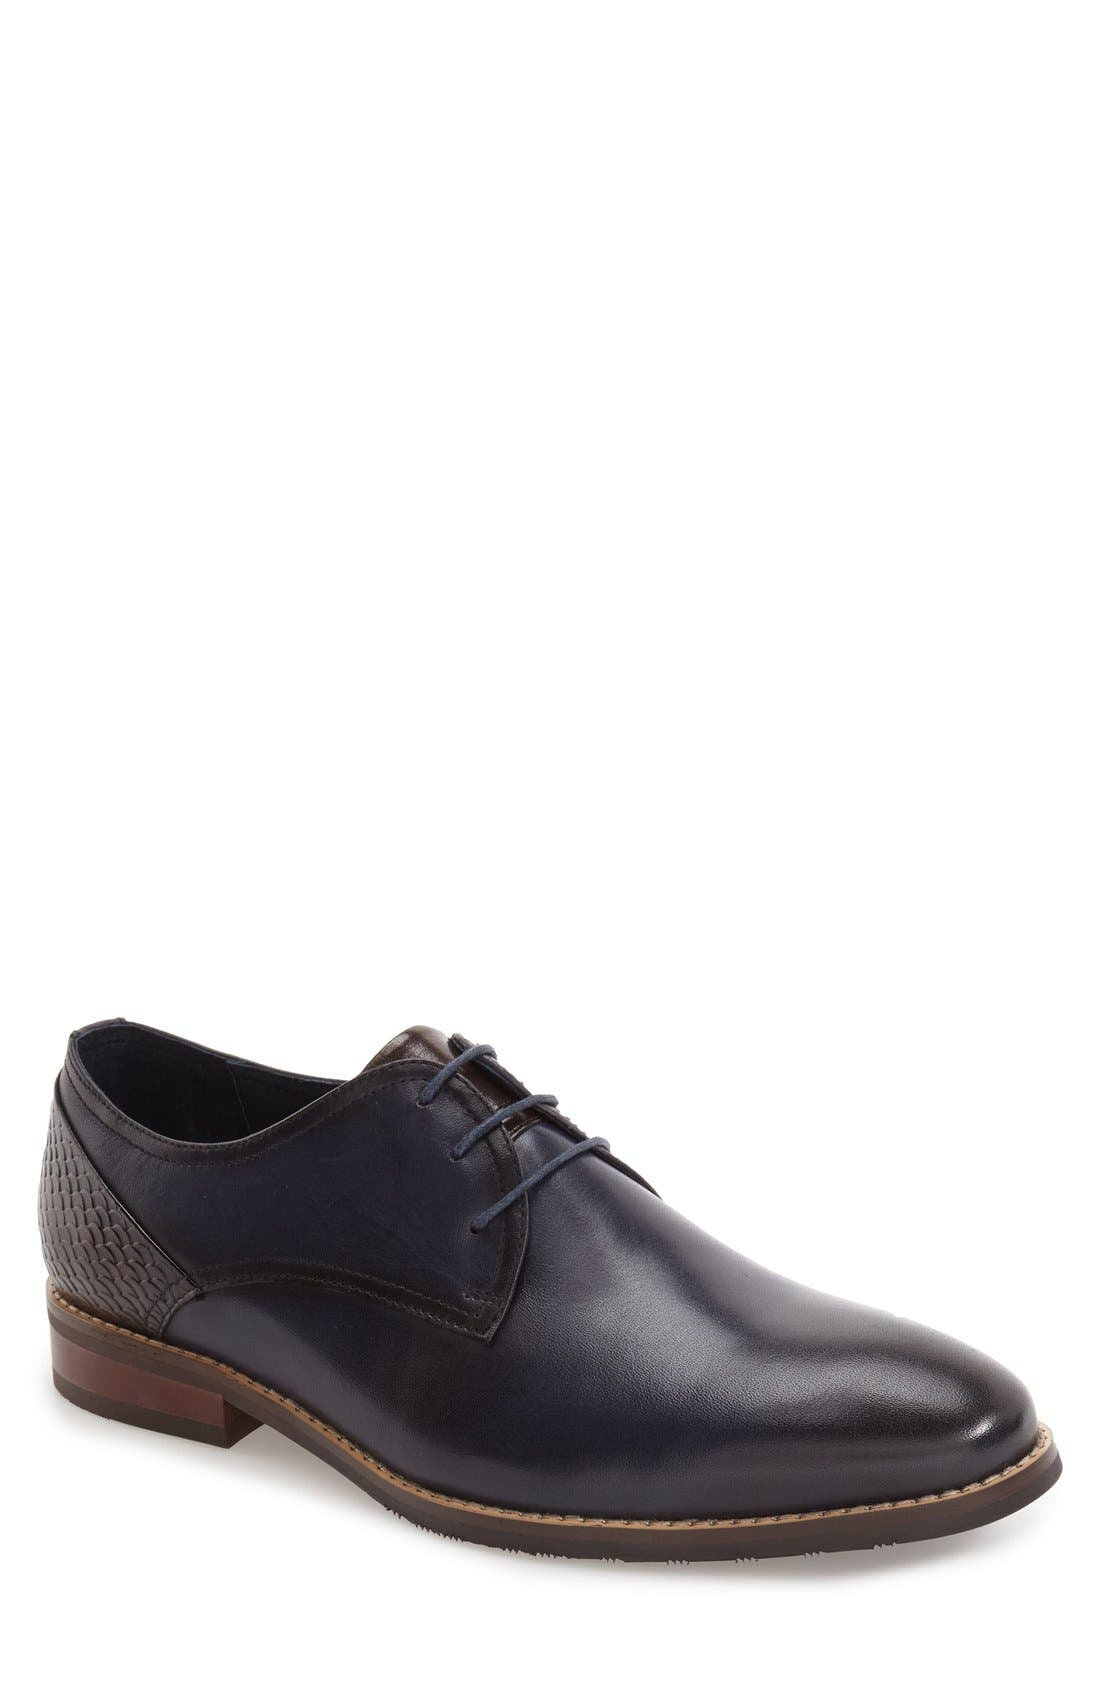 'Seattle' Plain Toe Derby,                             Main thumbnail 1, color,                             Navy Leather